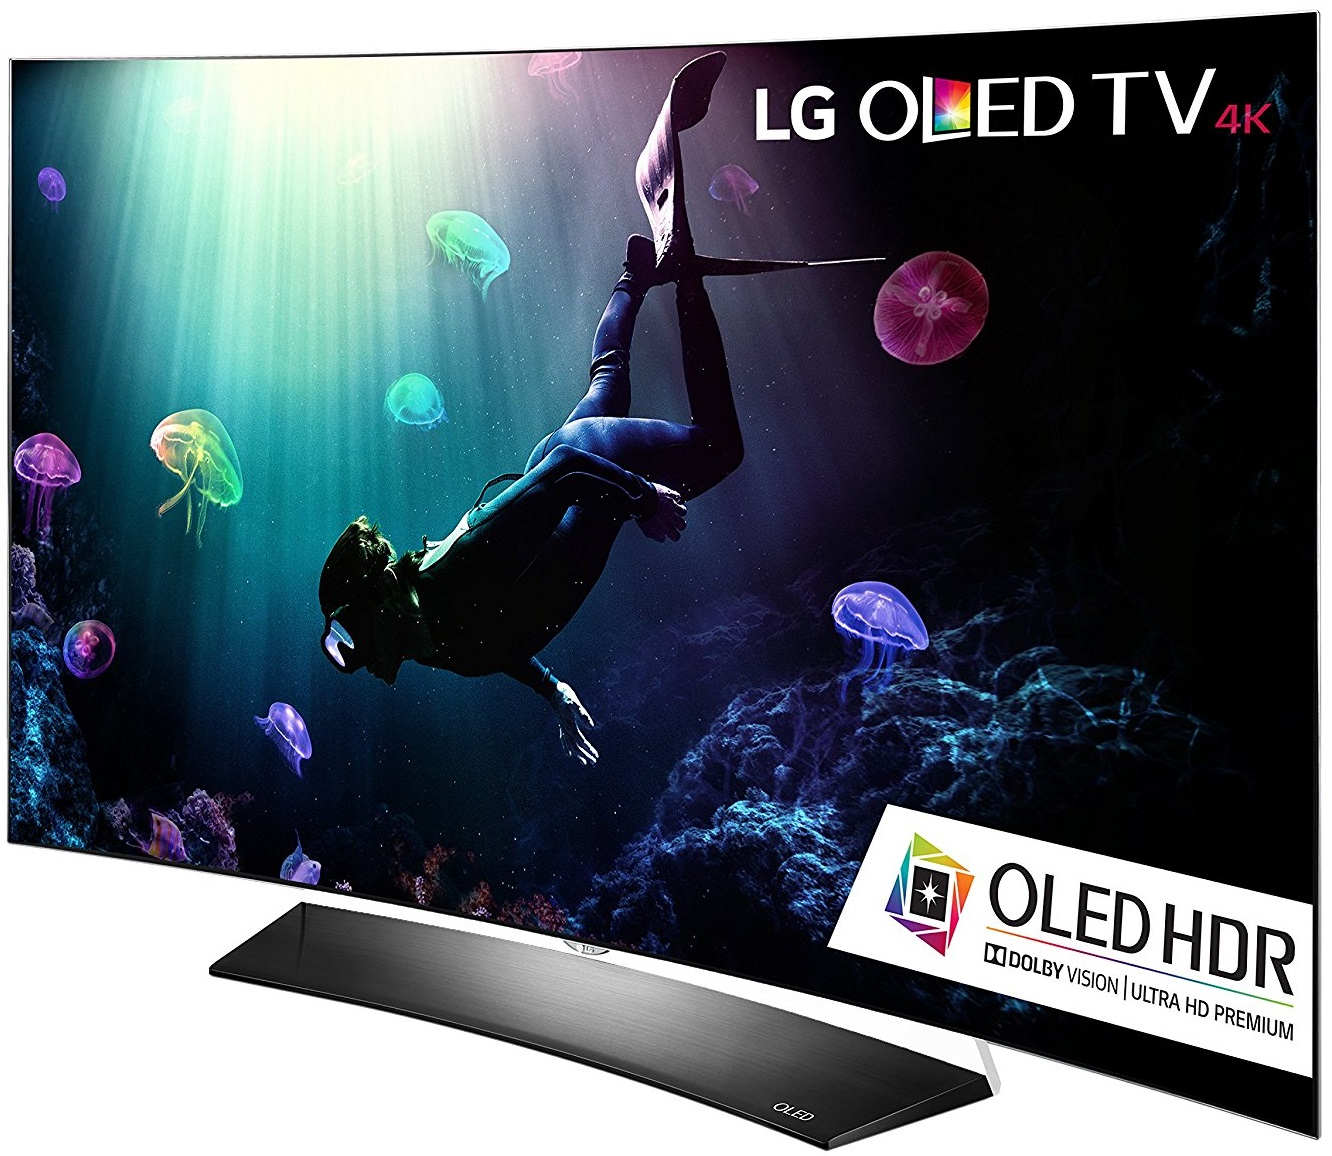 Lg Oled55c6p Vs 55eg9100 Which 55 Inch Curved Oled Tv Should You